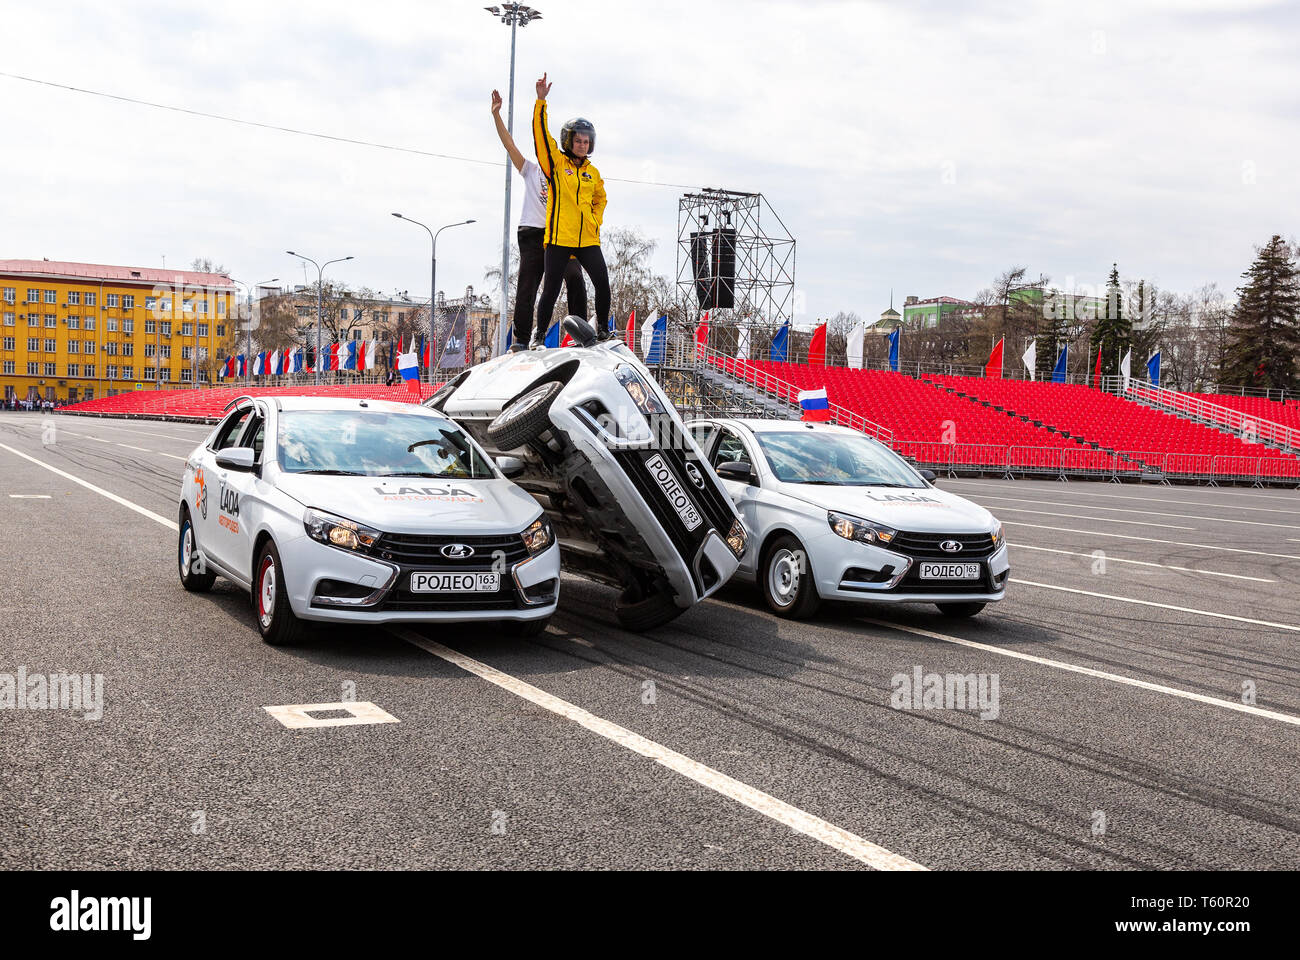 Samara, Russia - May 1, 2018: Performance of members from stuntmen team Avtorodeo Togliatti Trick during celebration First May at the central square - Stock Image